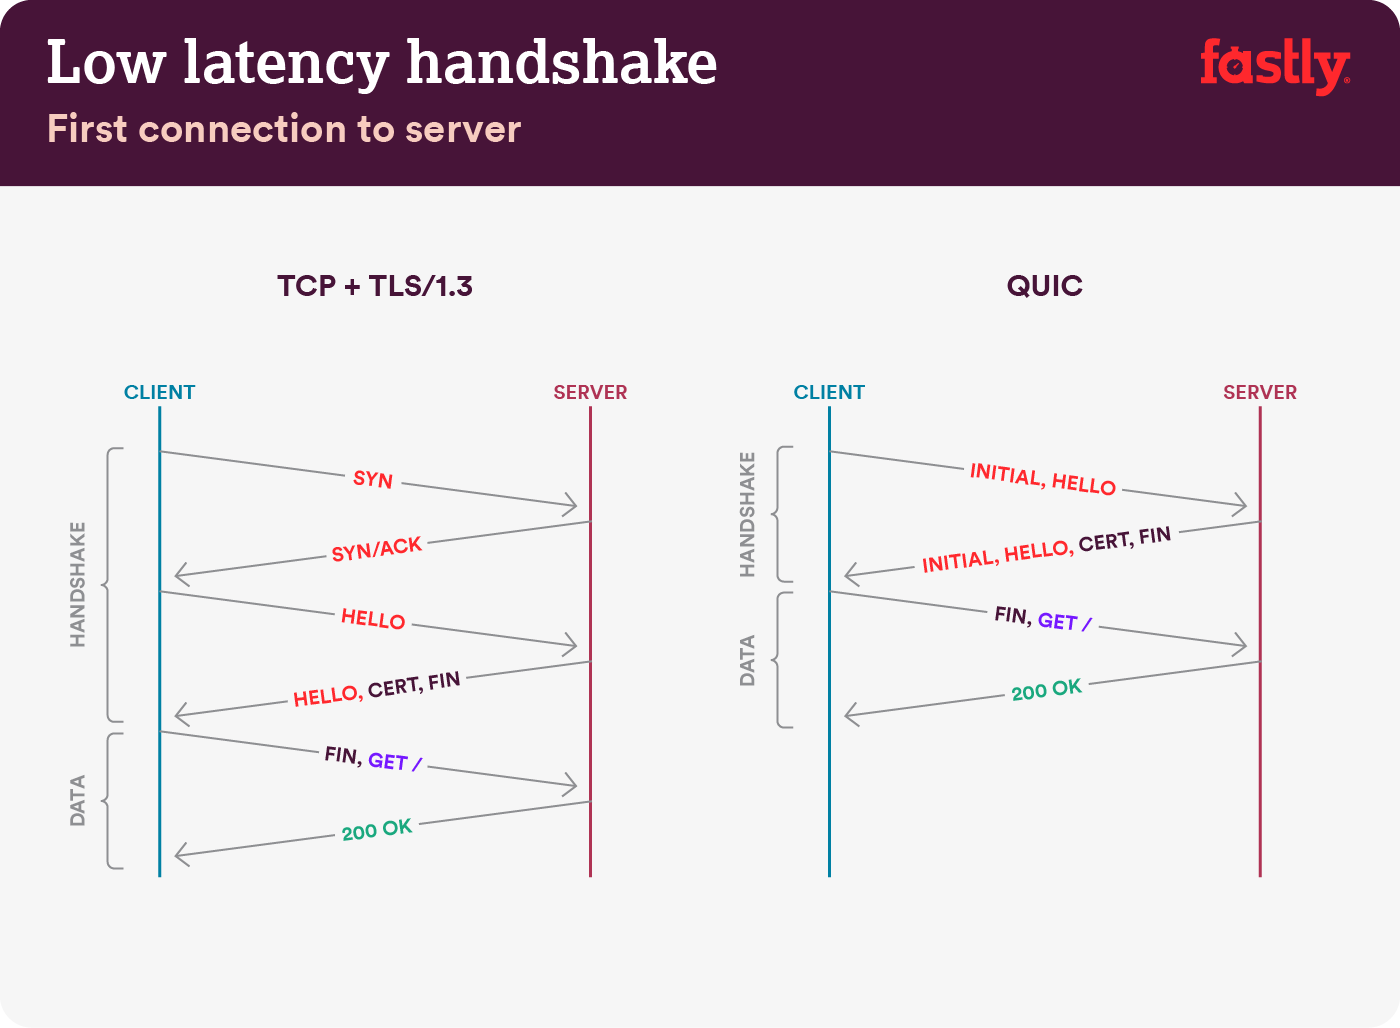 Low latency QUIC handshake